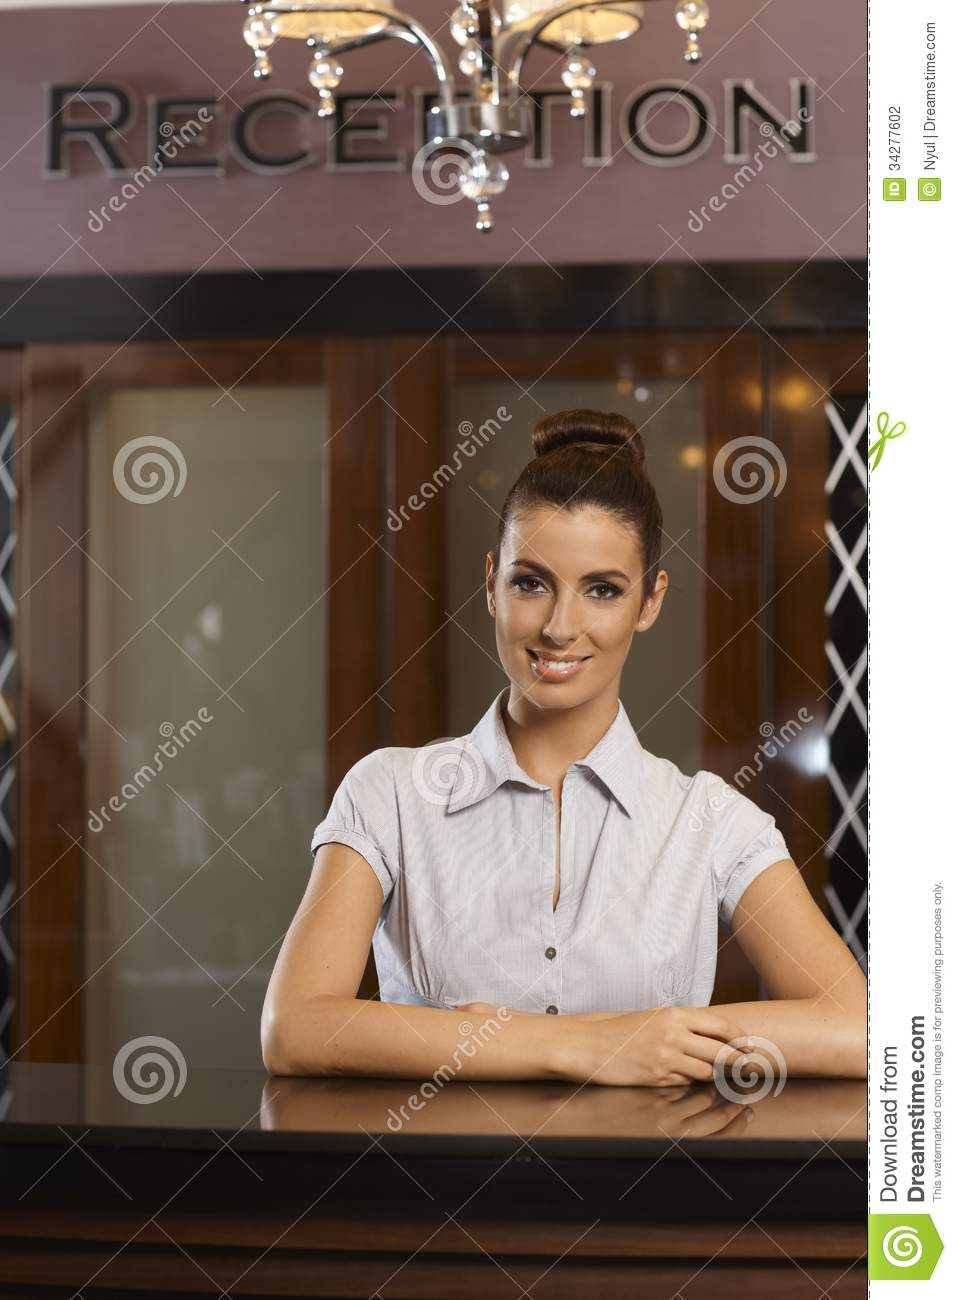 Portrait Of Happy Receptionist Stock Photo - Image: 34277602